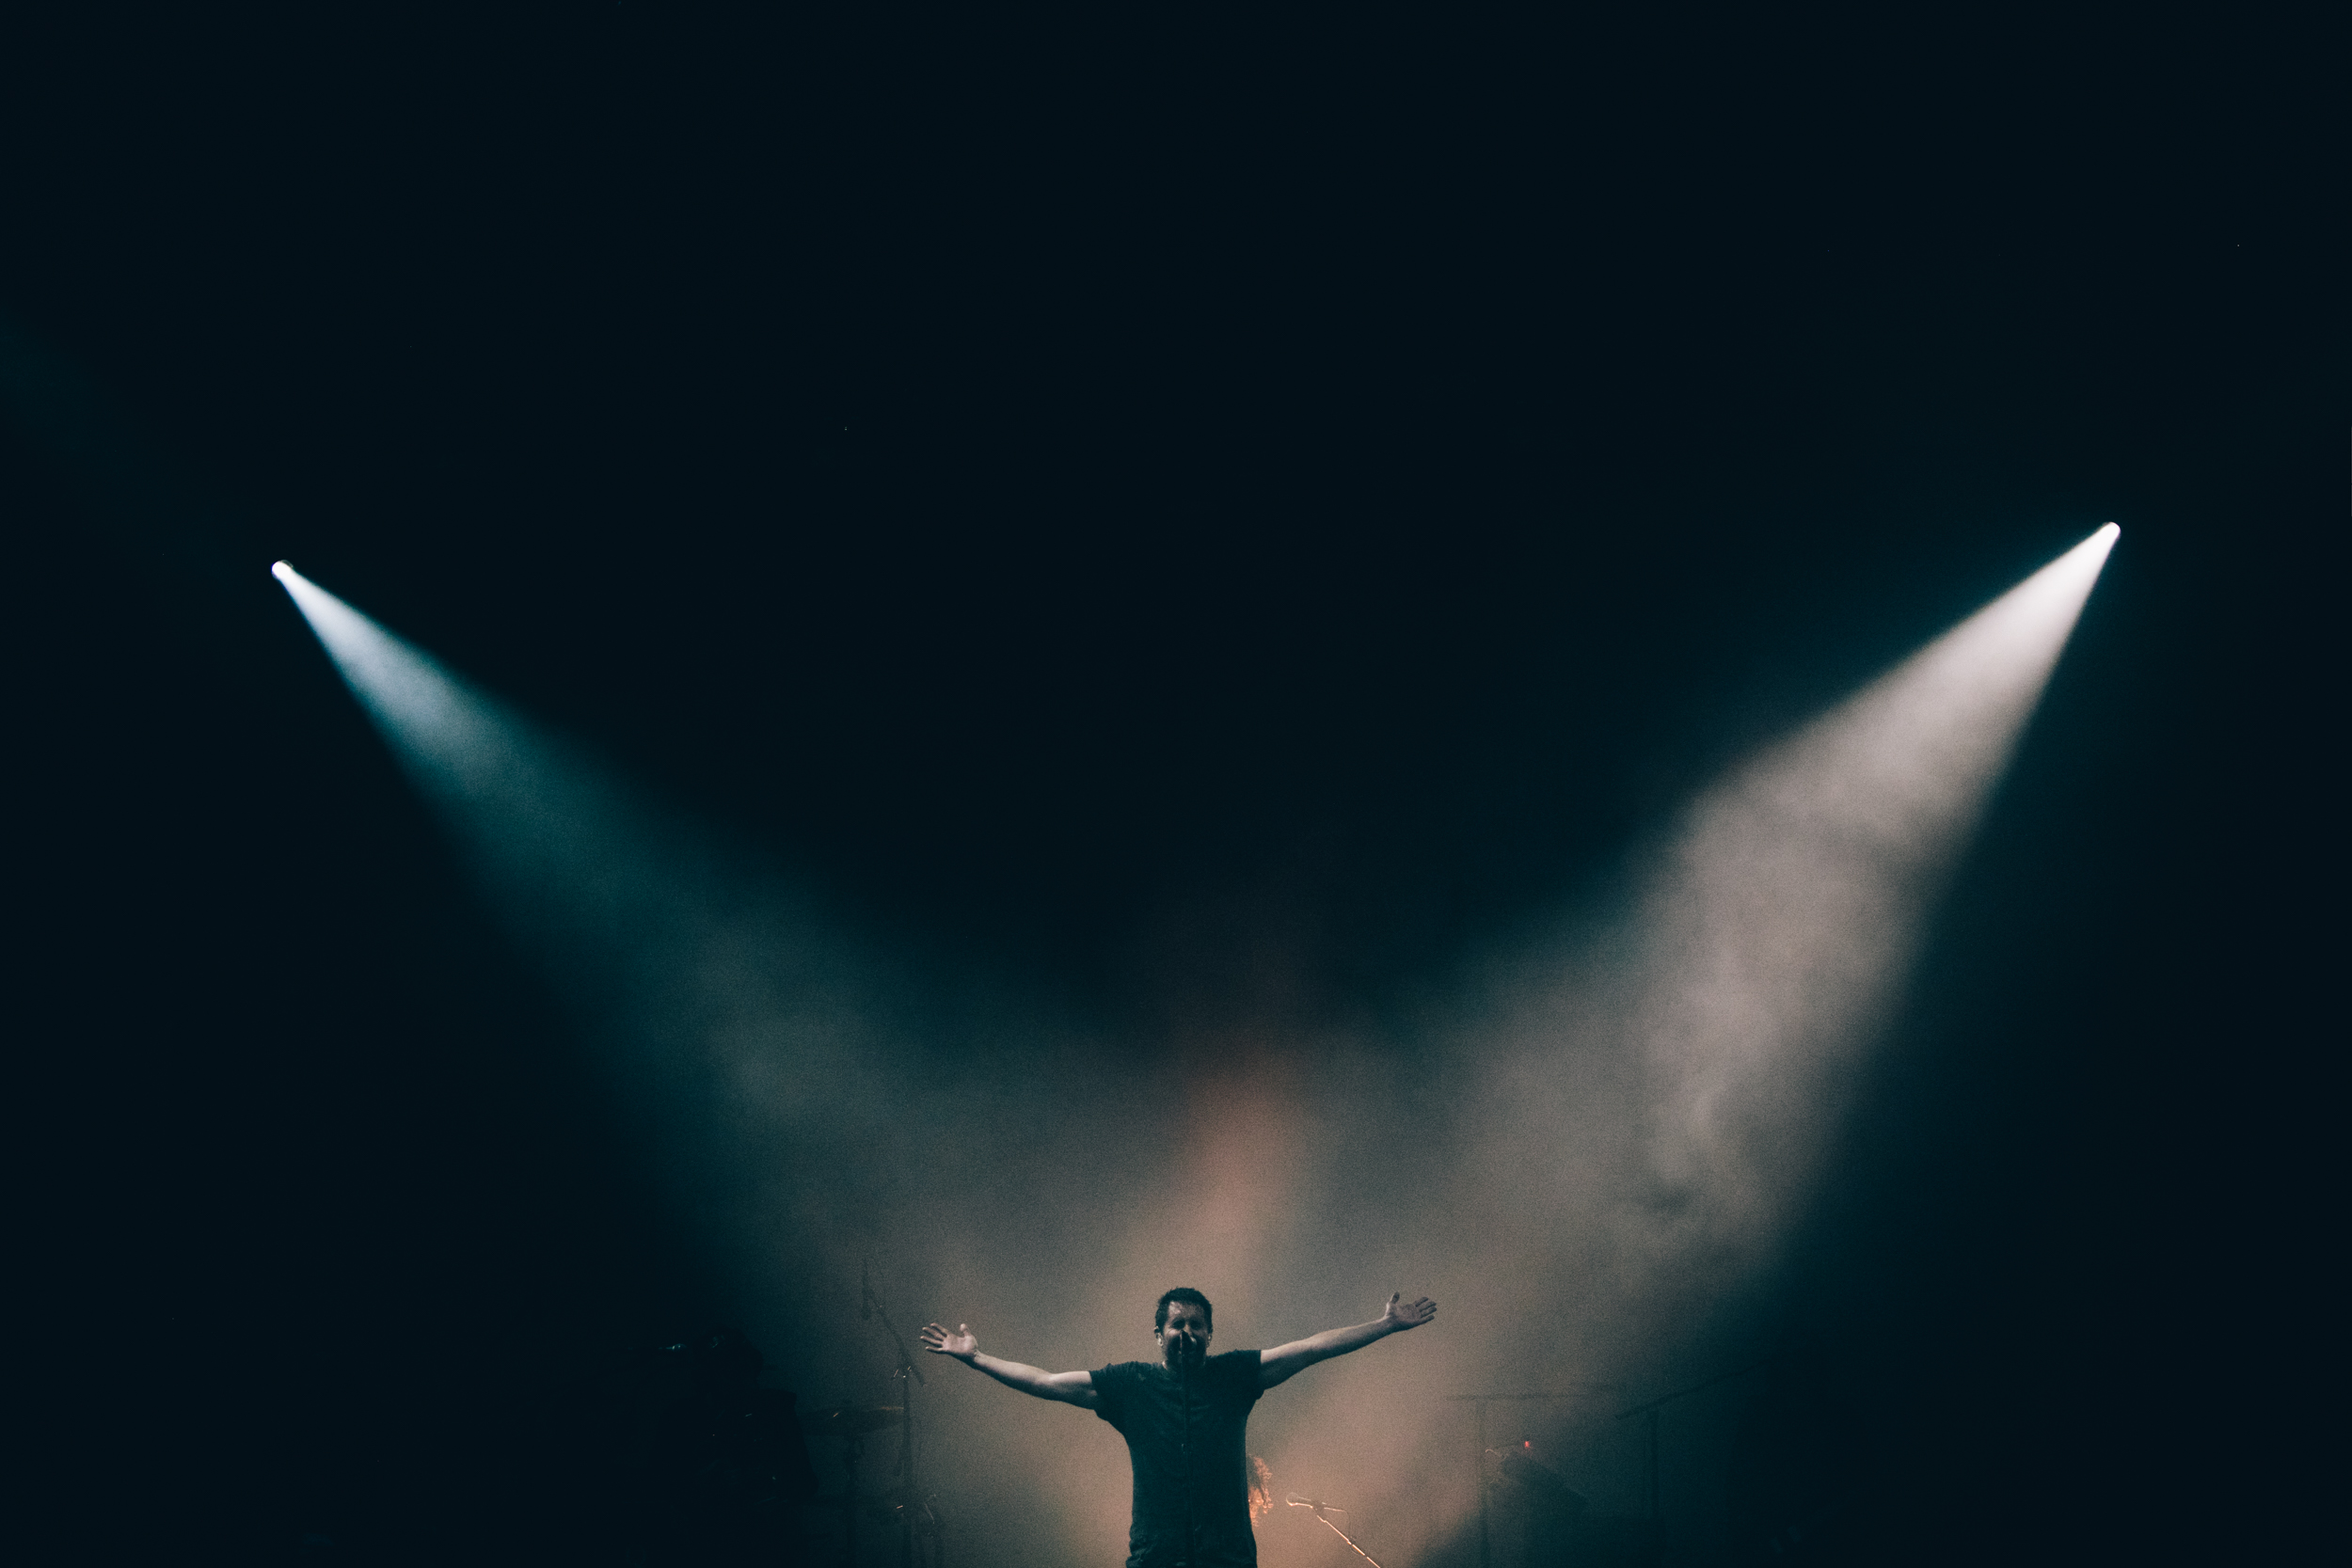 Trent Reznor basks in the limelight during Nine Inch Nails' performance on Thursday 12 July. Credit: Arlindo Camacho